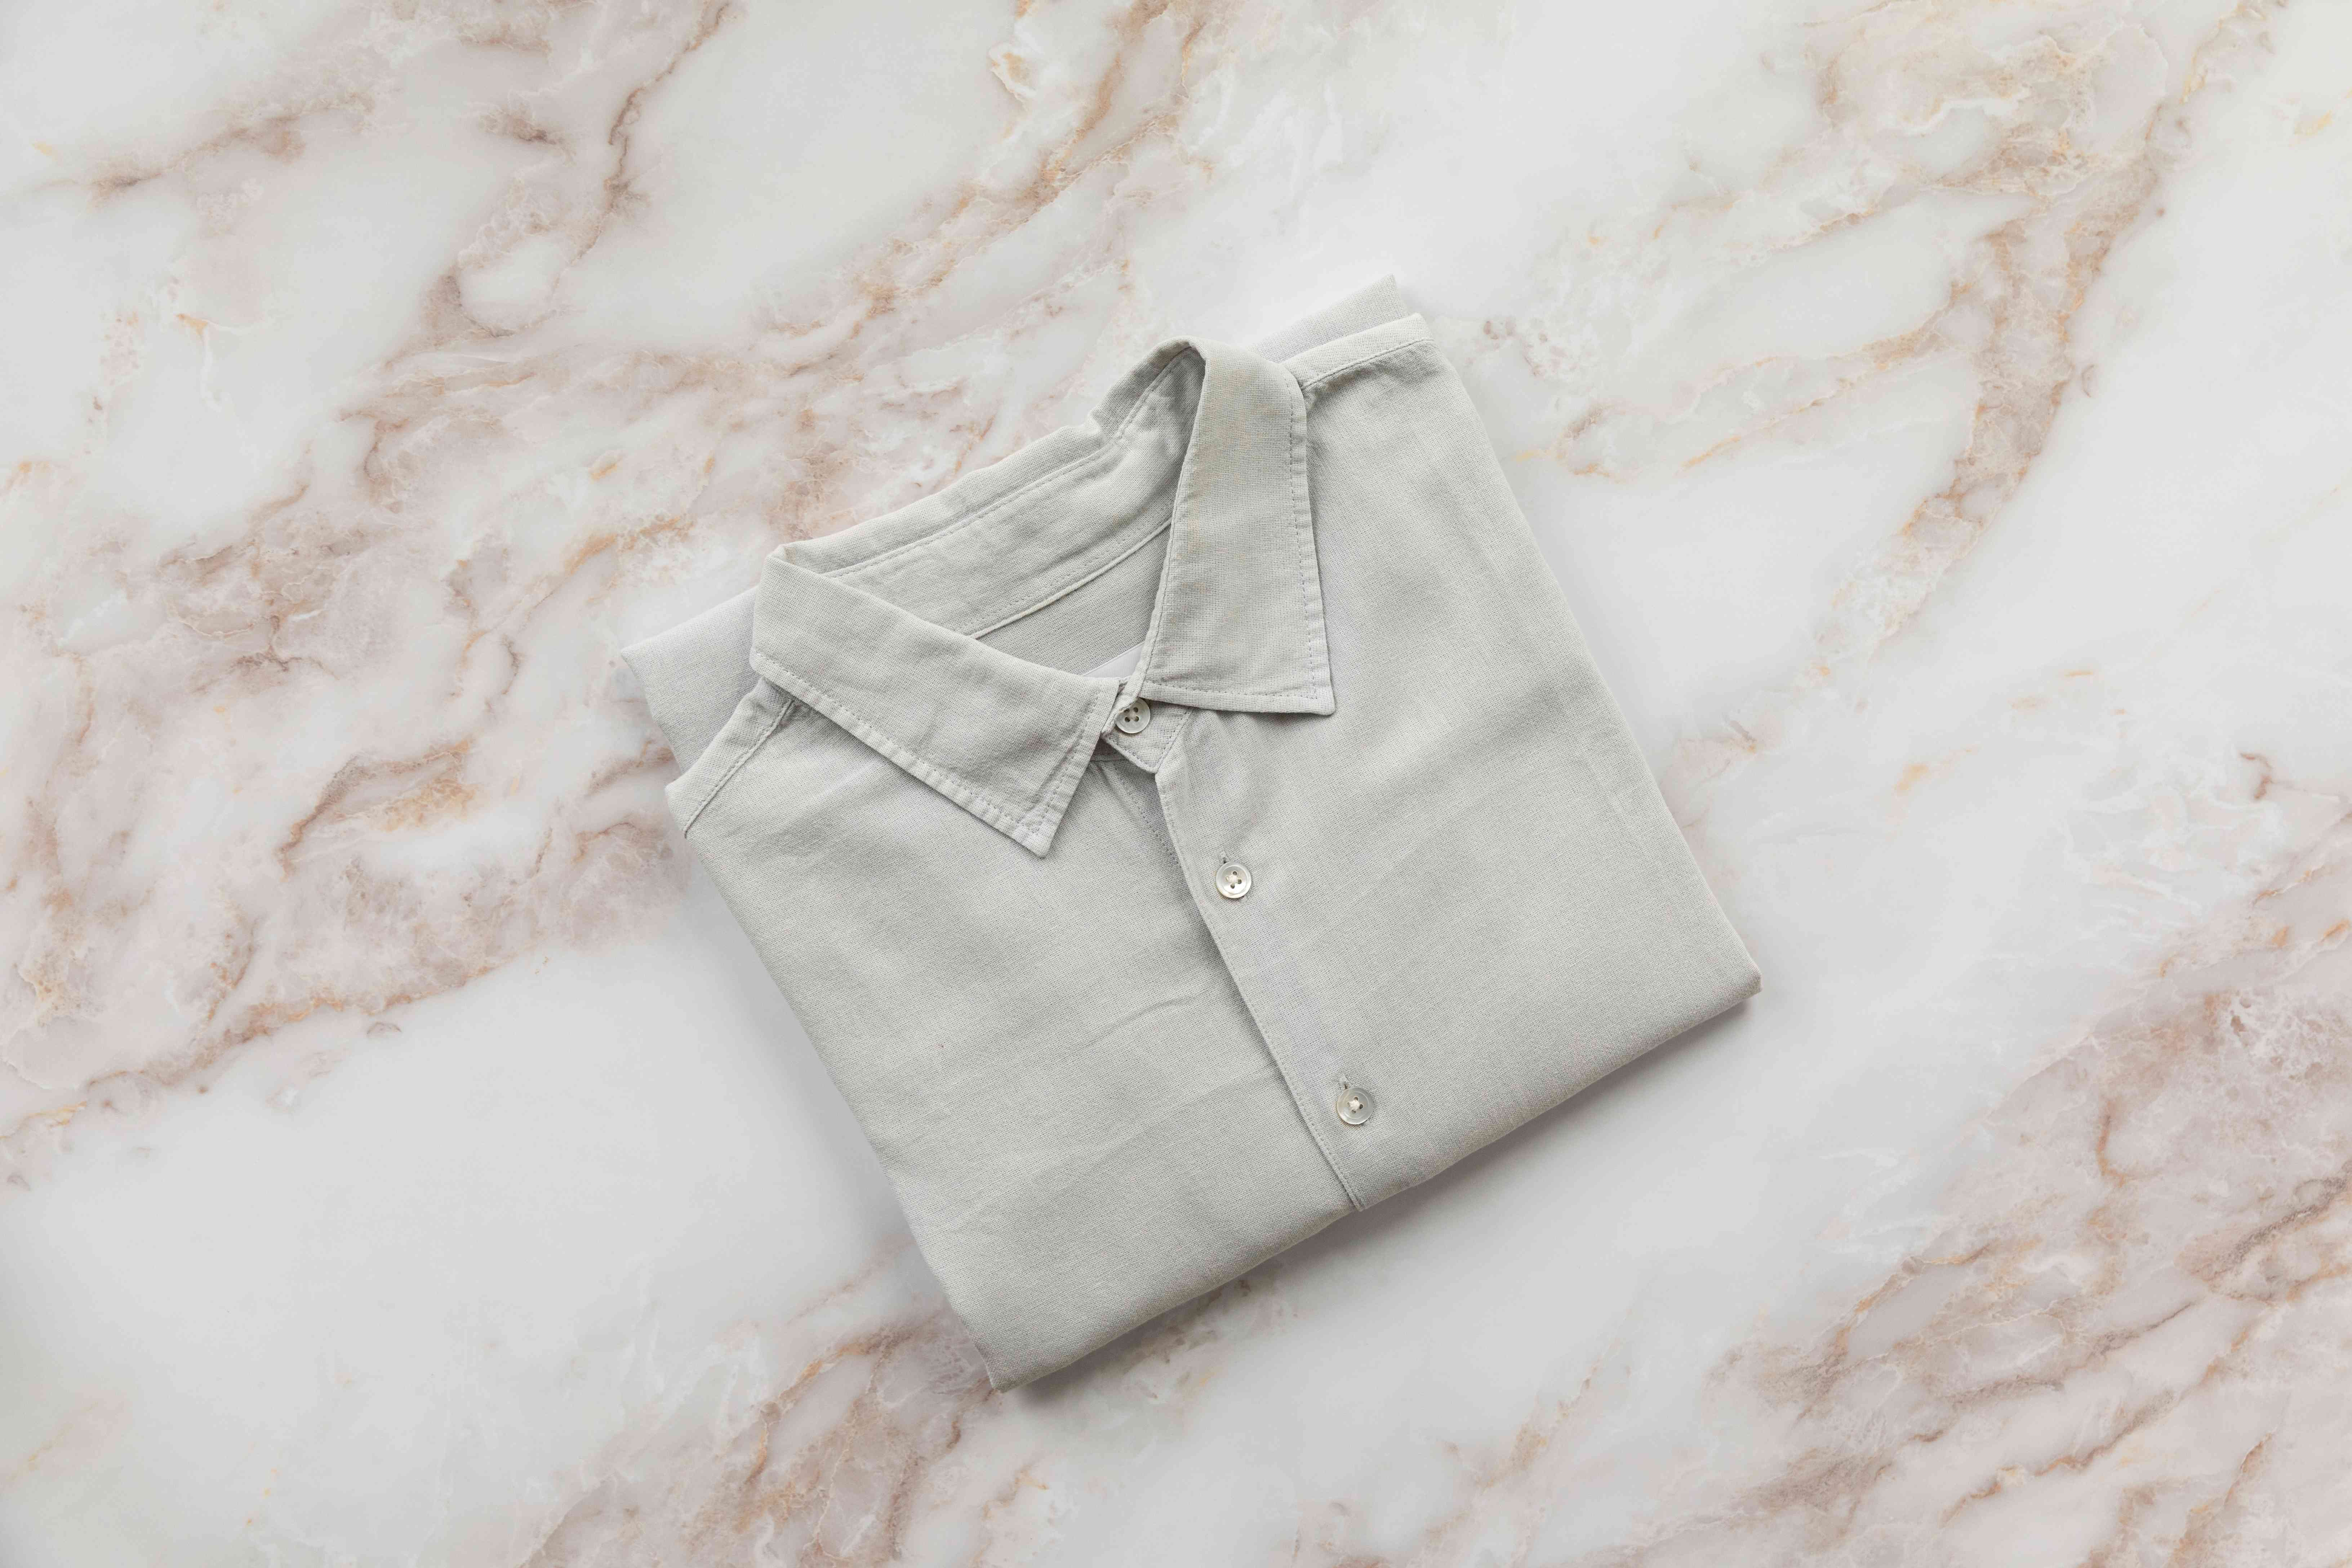 Tan collared shirt folded neatly face up on white marbled surface